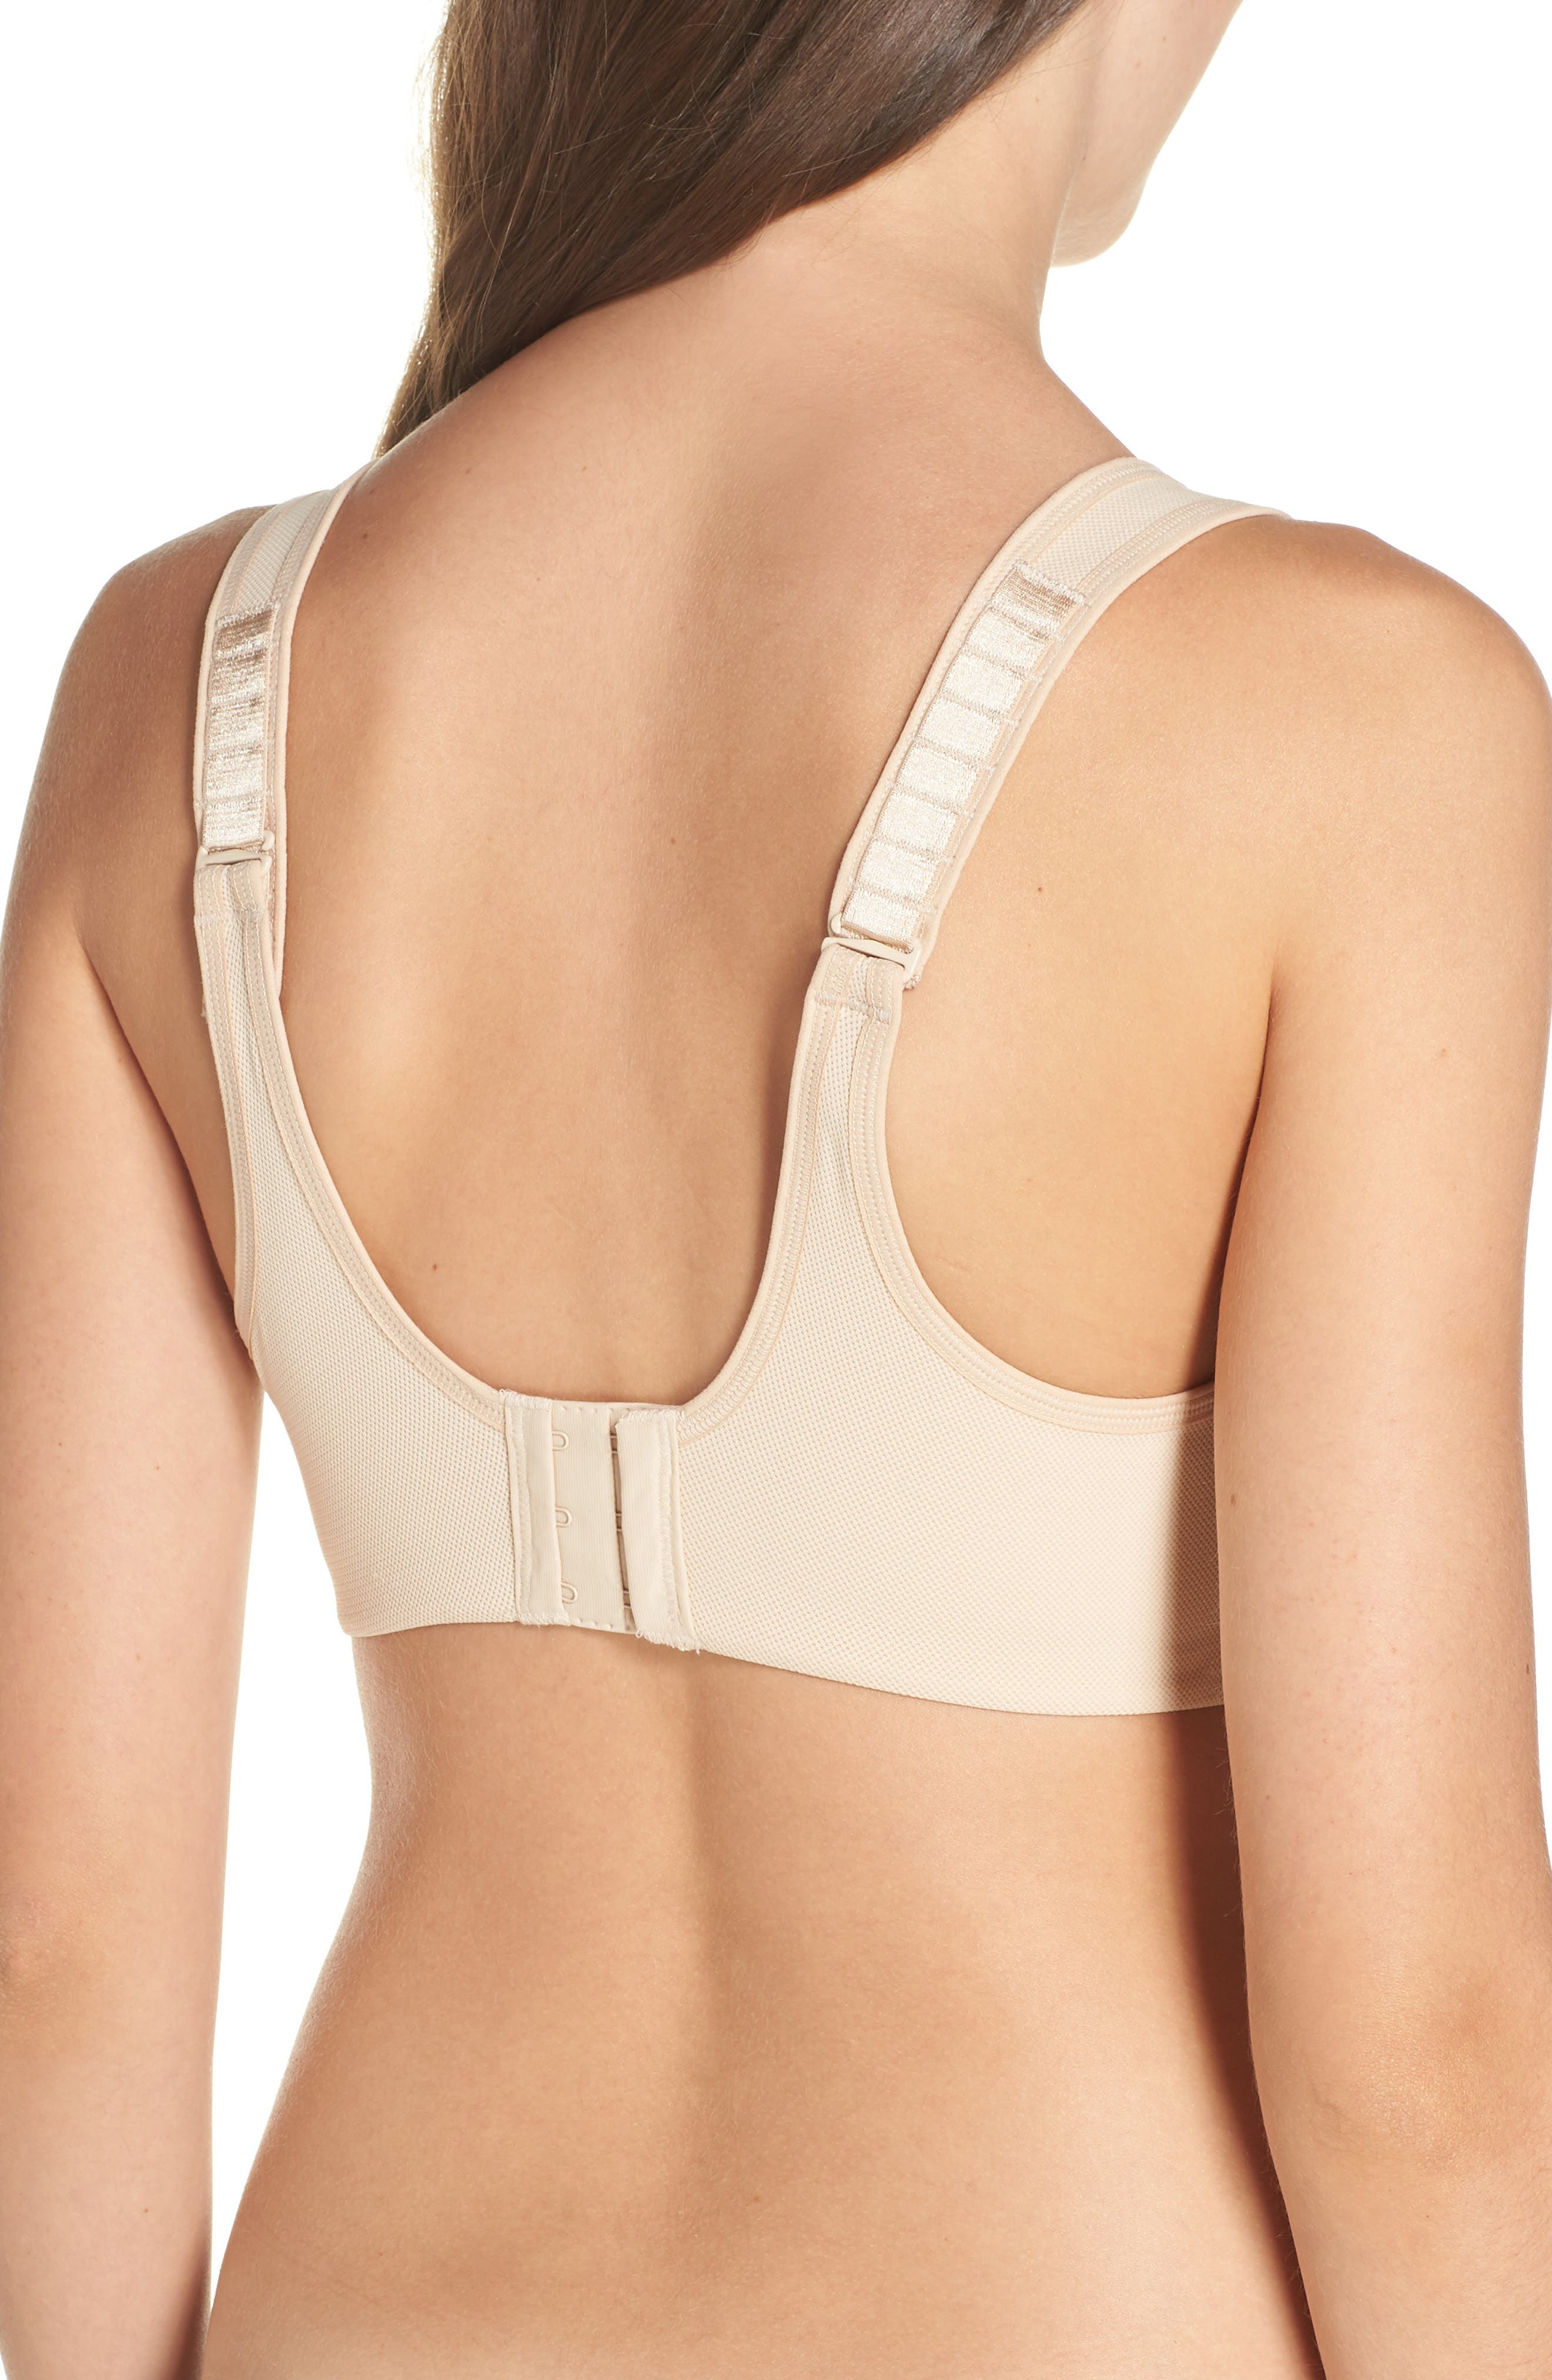 Underwire Sports Bra,                             Alternate thumbnail 2, color,                             274